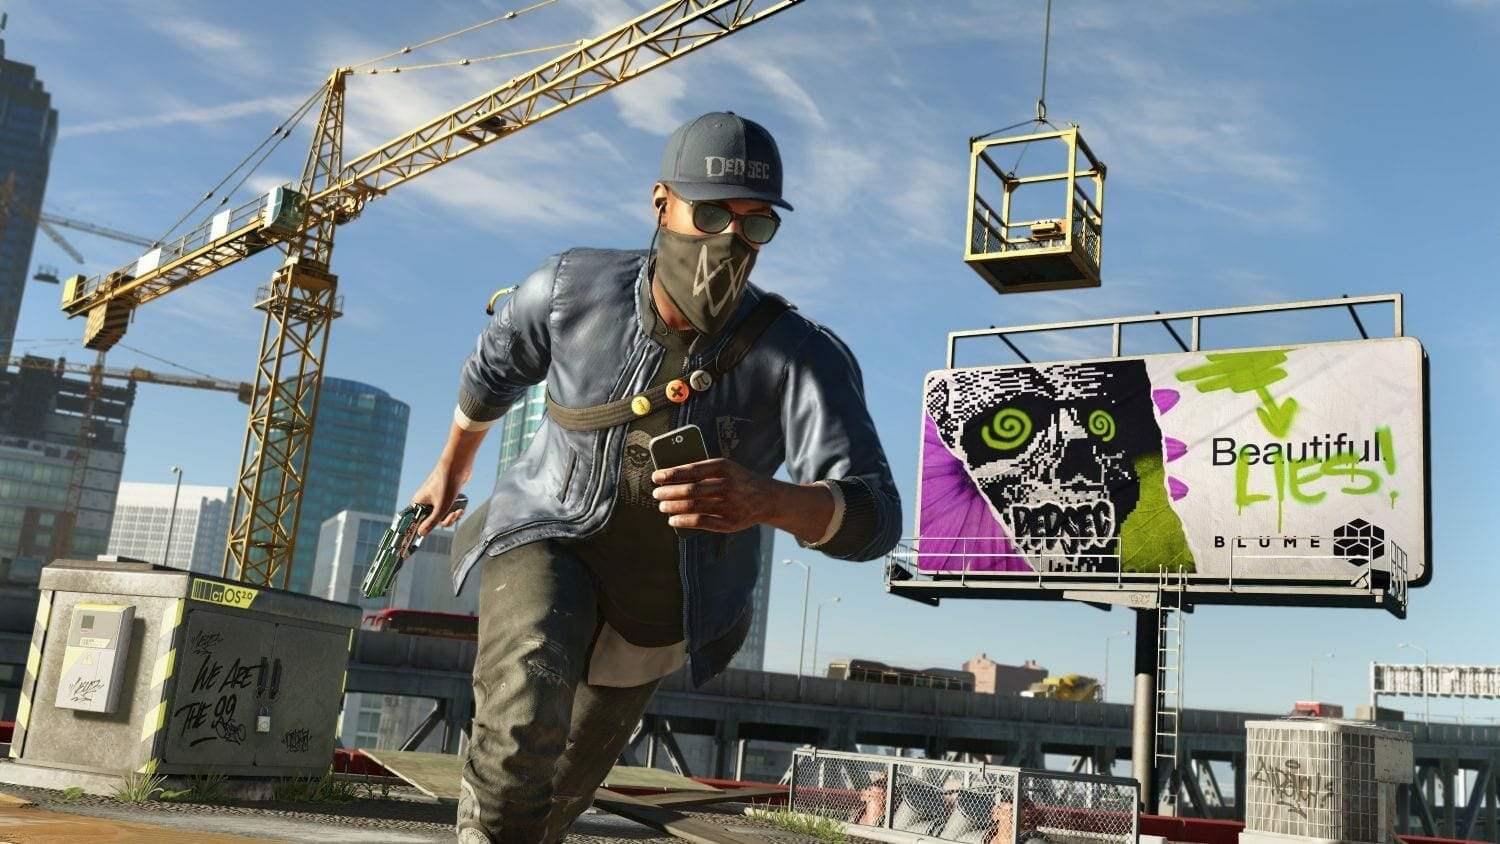 Rumor: Ubisoft May Have Accidentally Revealed Watch Dogs 3 Is In Development